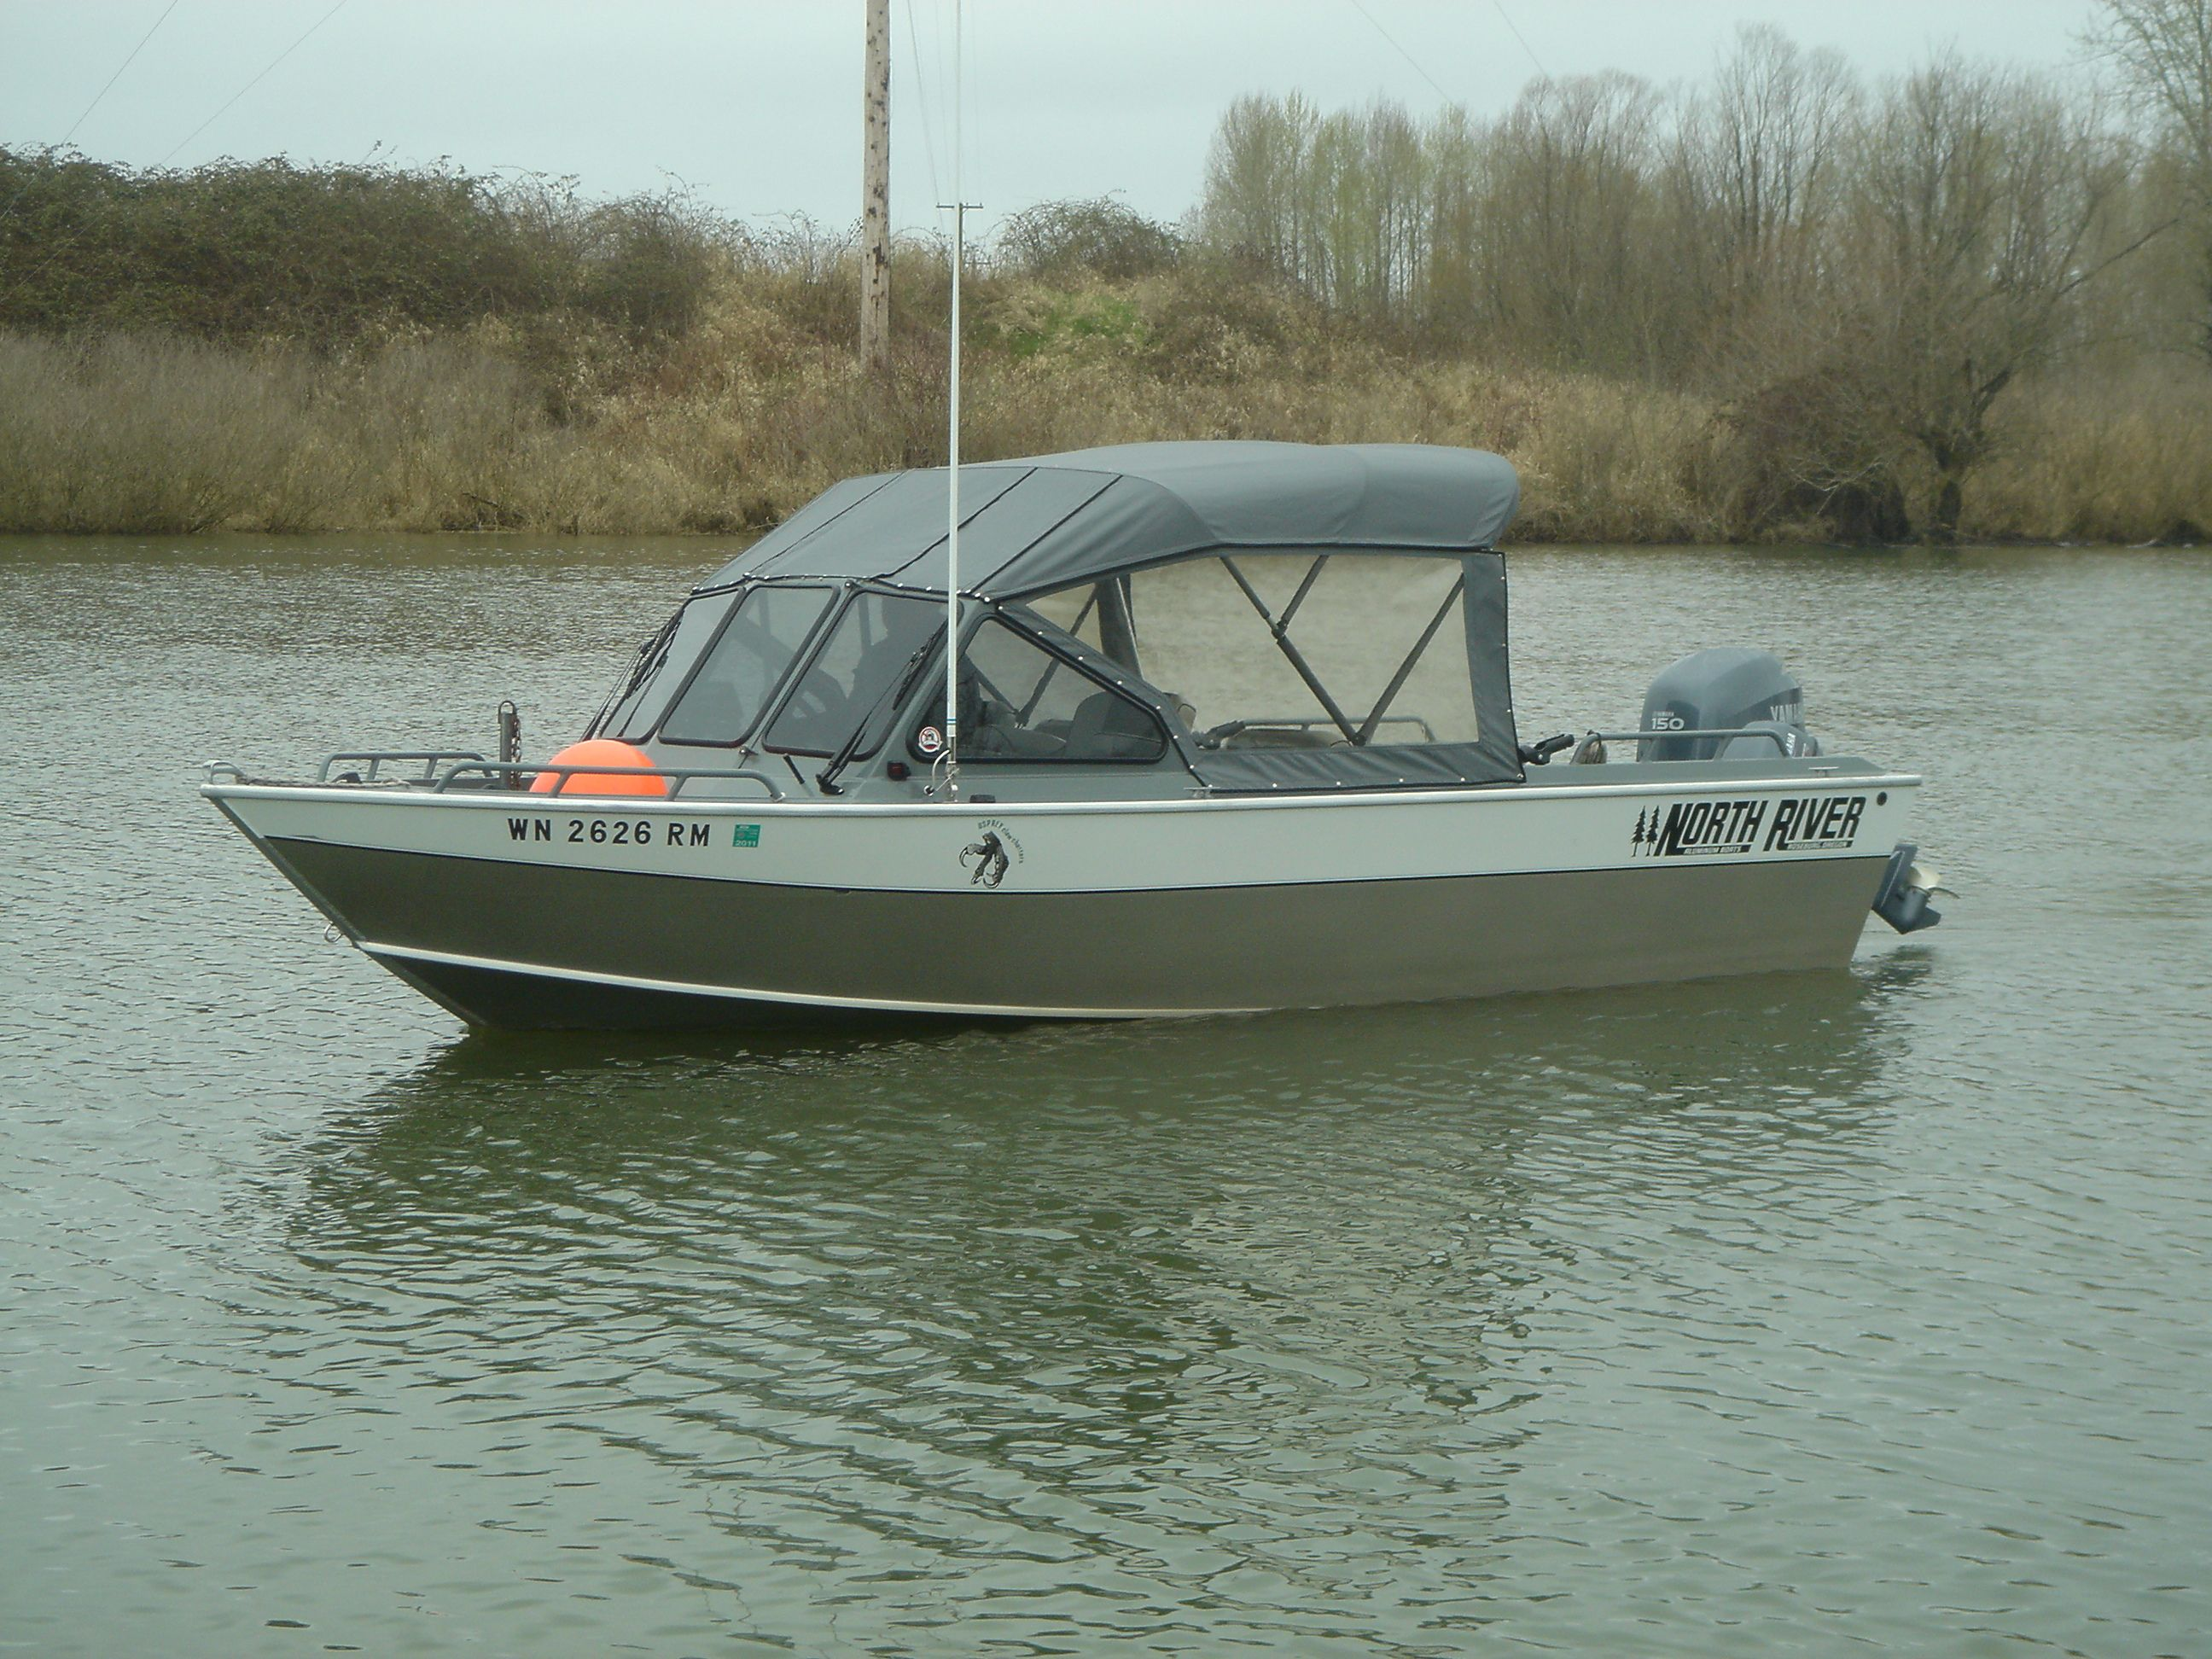 North river 20 39 seahawk boat ideas pinterest for Fishing jet boat